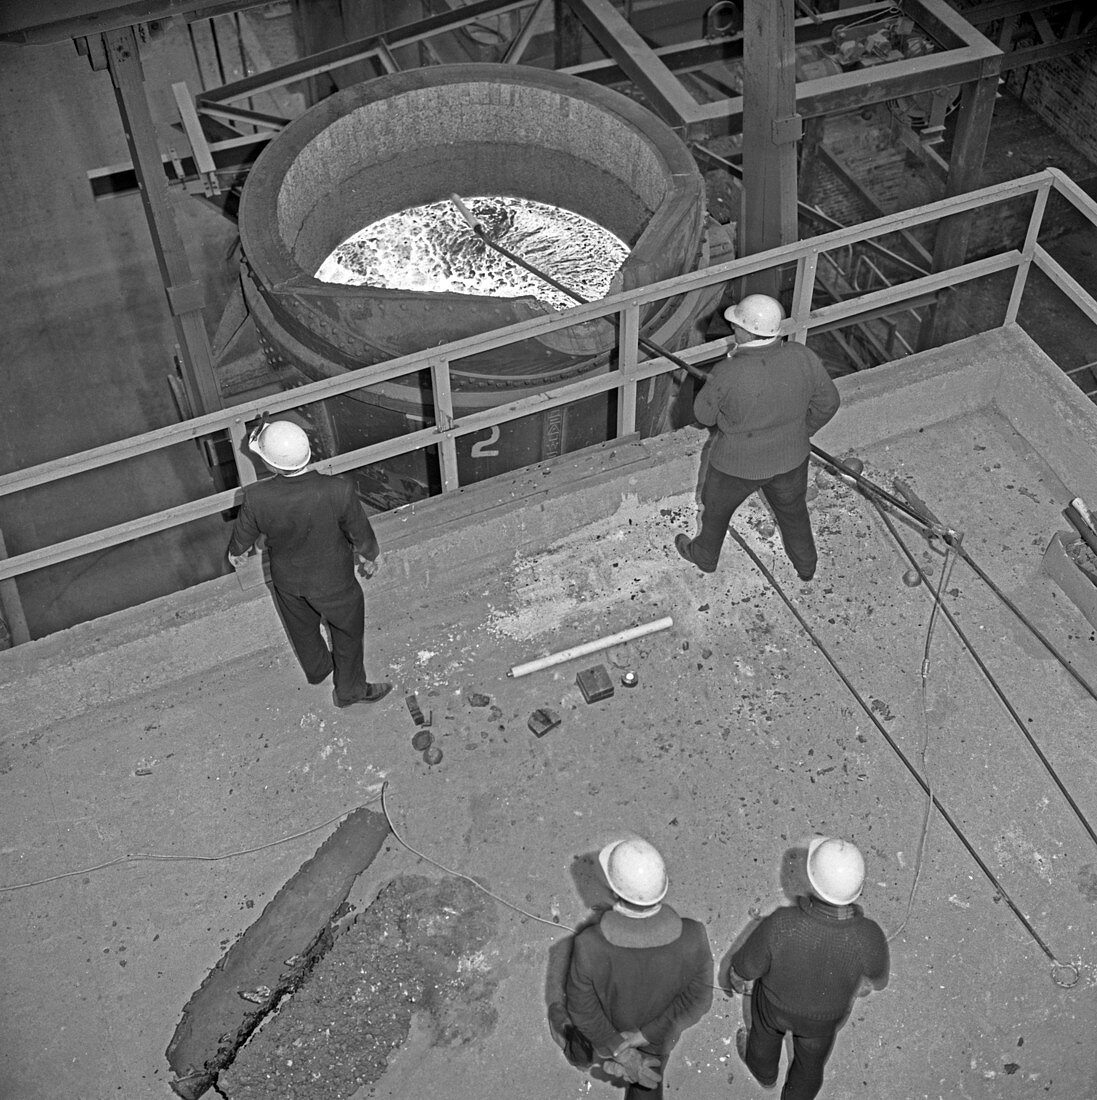 Testing the temperature of molten steel, 1964